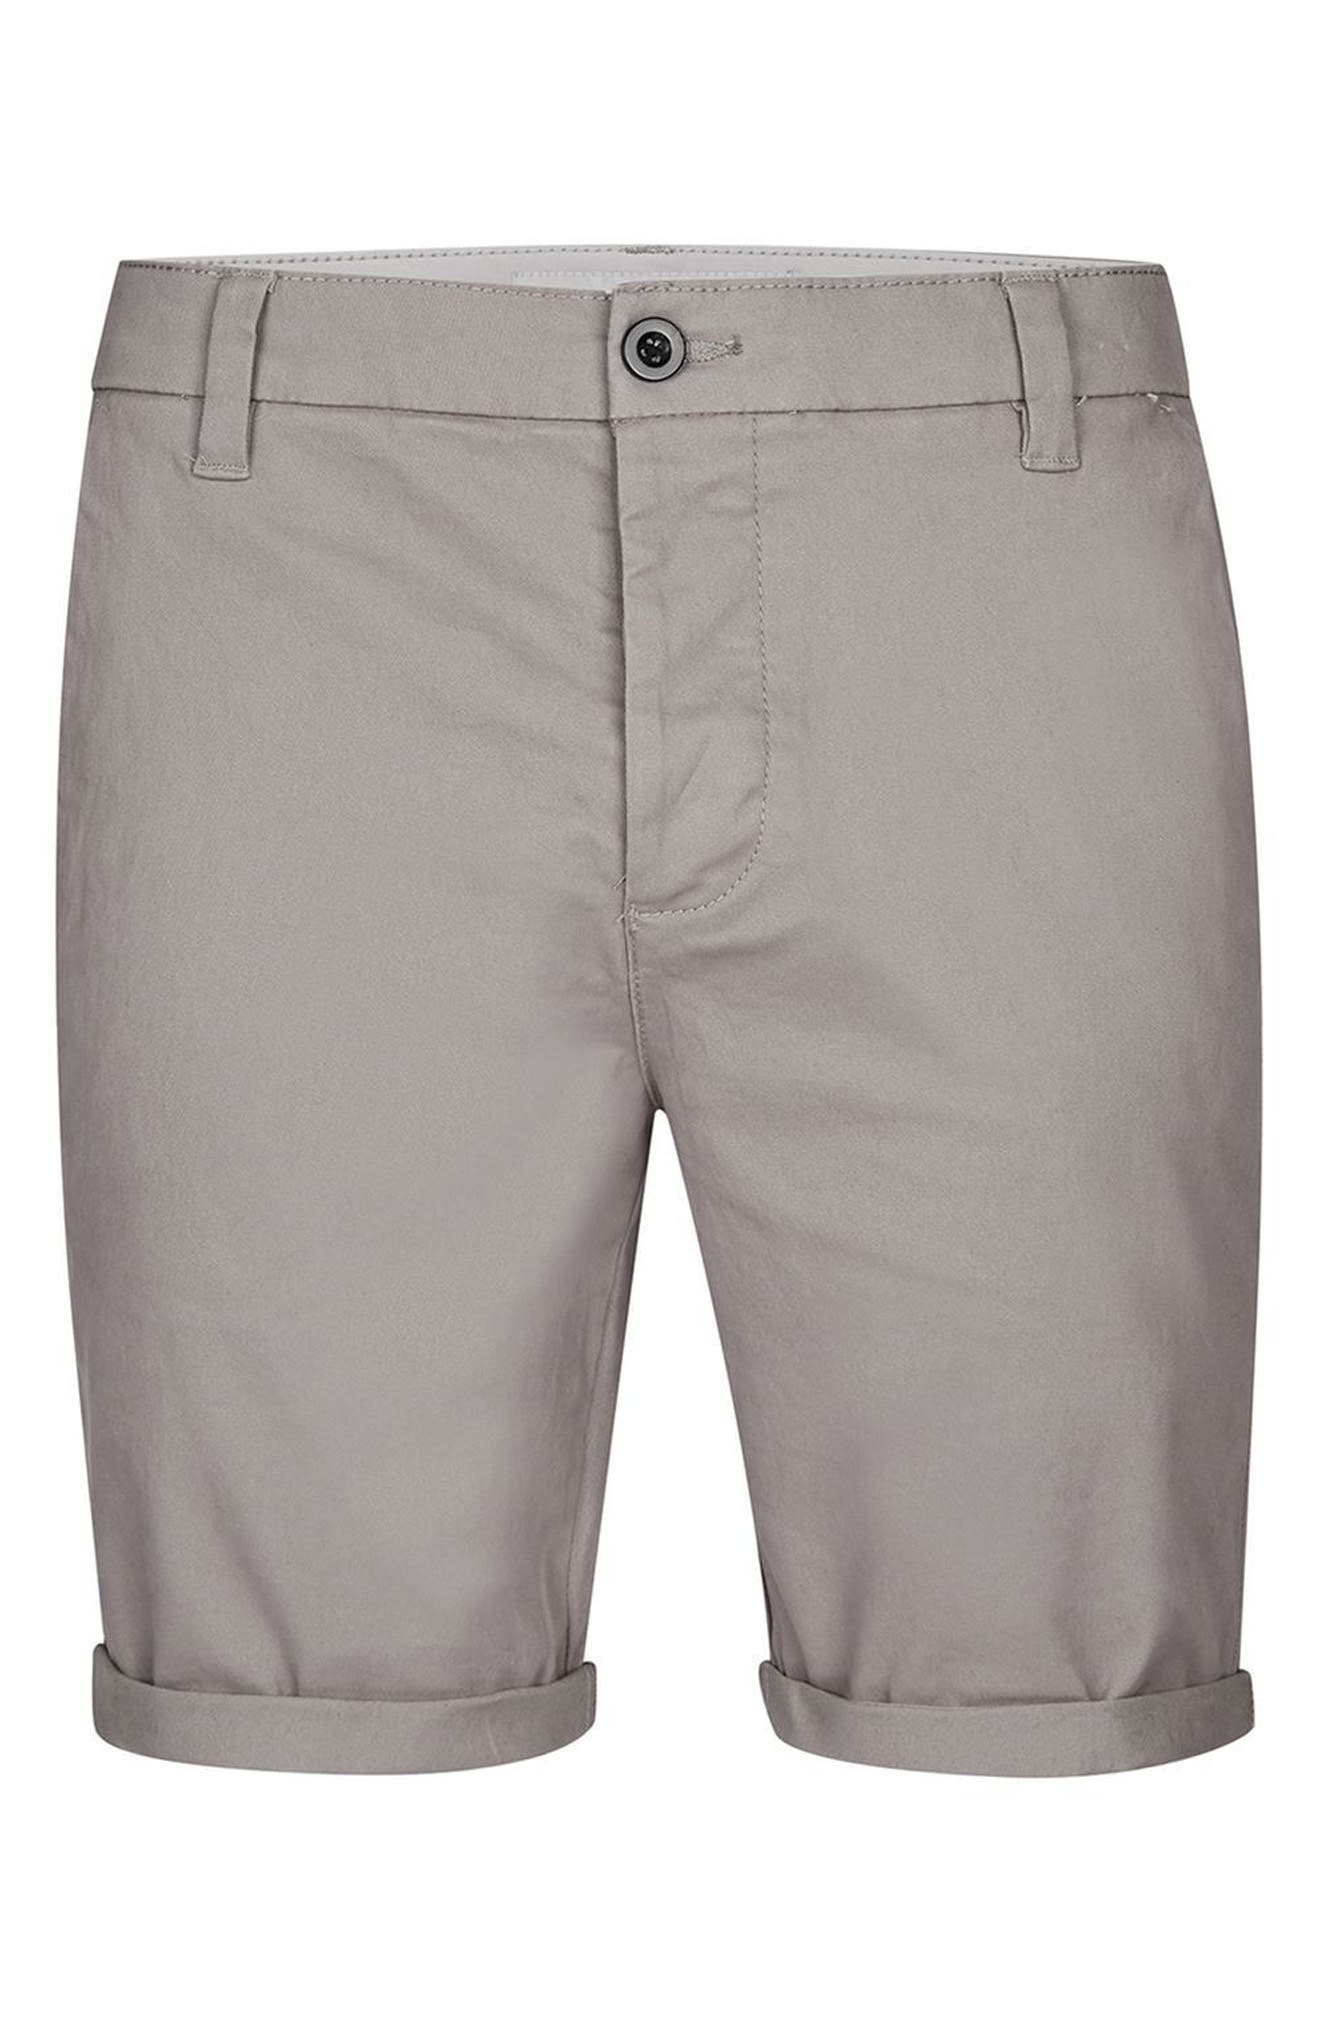 Stretch Skinny Fit Chino Shorts,                             Alternate thumbnail 4, color,                             030